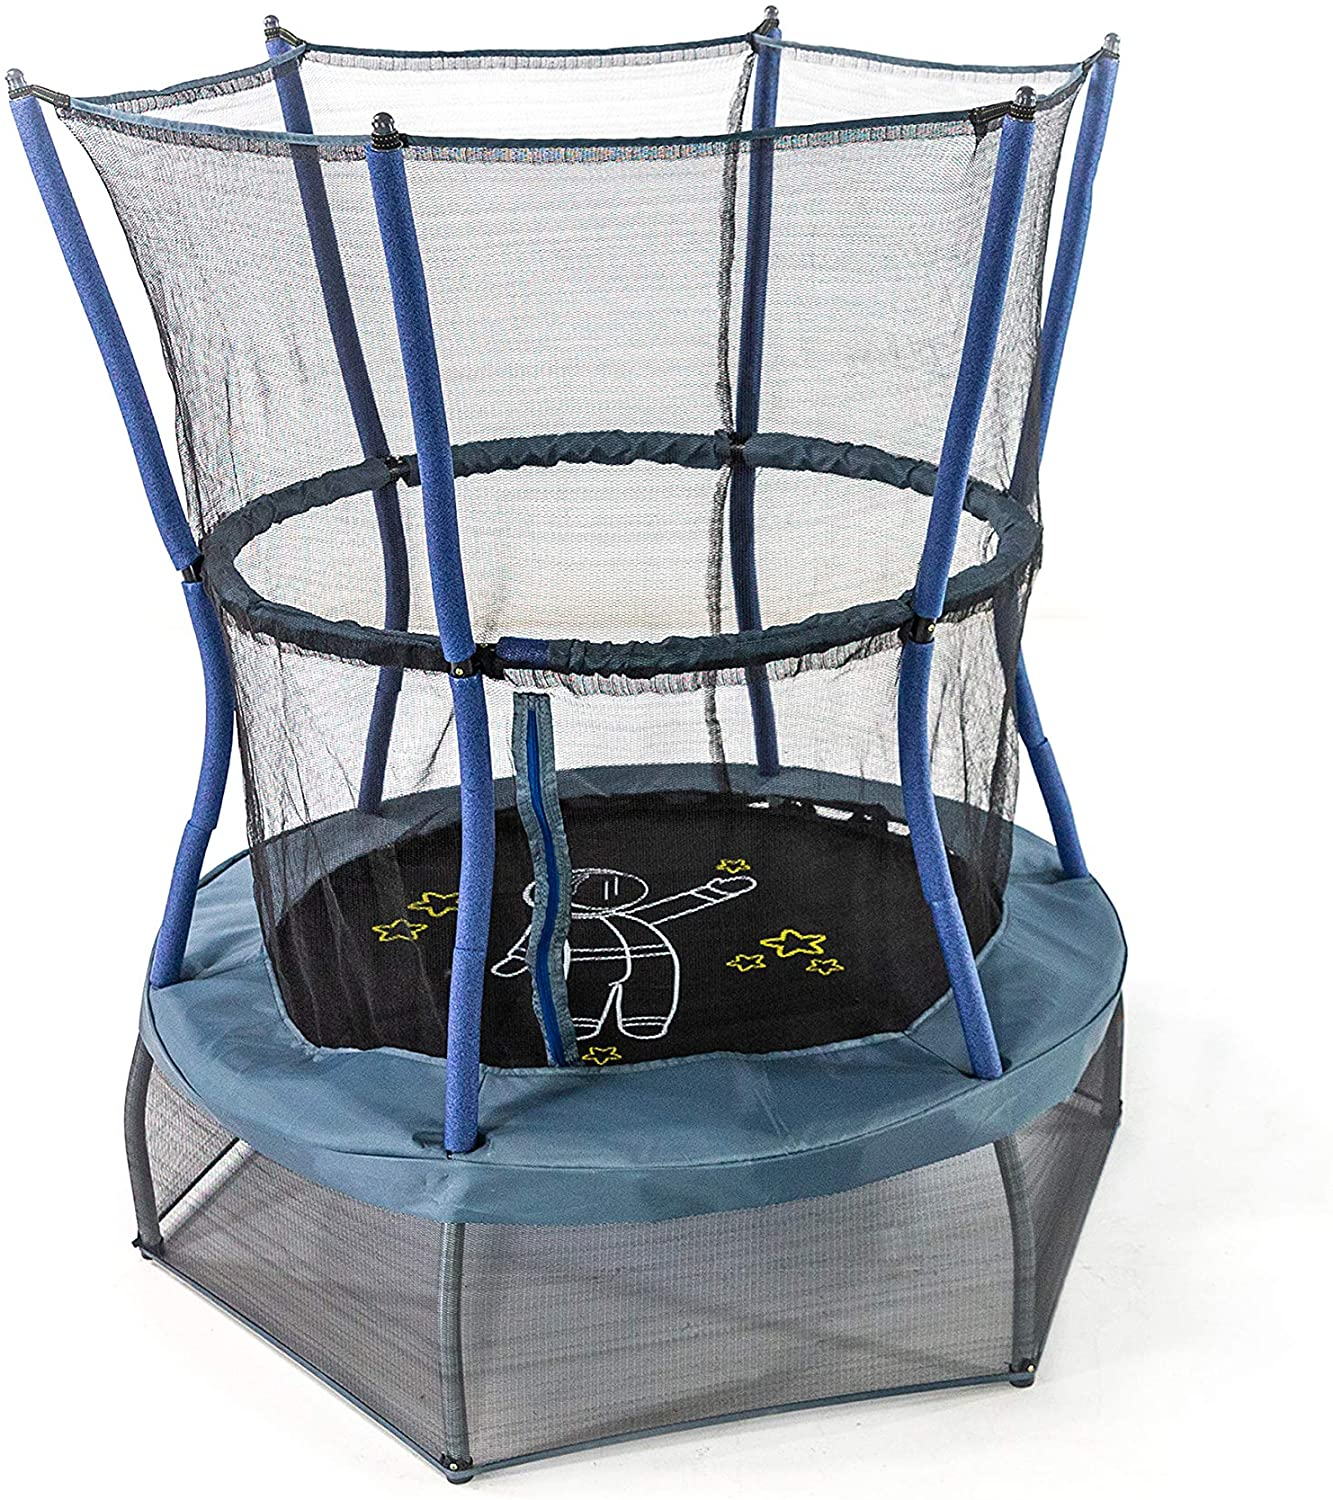 Skywalker 48 Inch Mini Trampolines with Enclosure Net